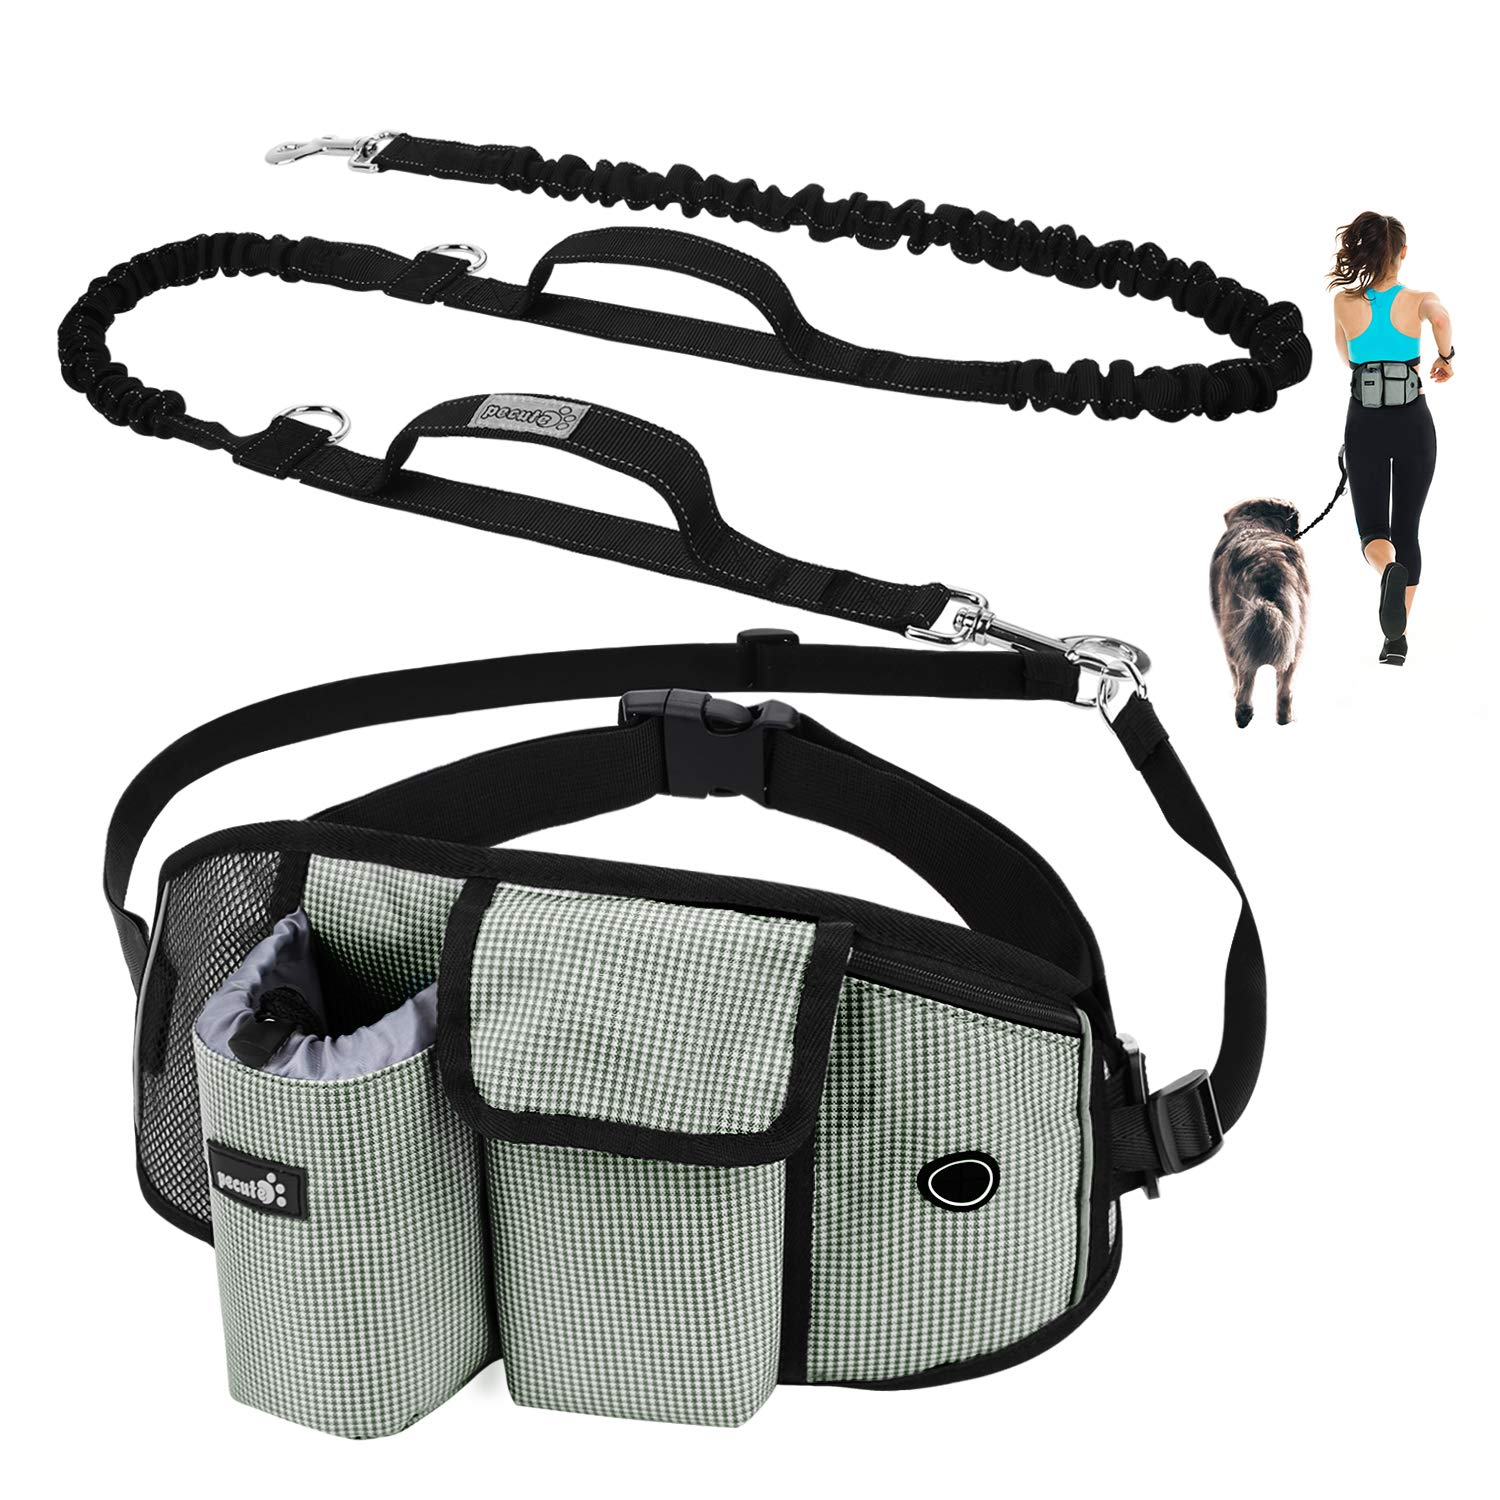 Pecute Hands-Free Dog Leash with Pouch, Comfortable Shock Absorbing Bungee Dog Waist Leash for Running Walking & Jogging, Great for Medium & Large Dogs up to 220lbs, Dual Handle by Pecute